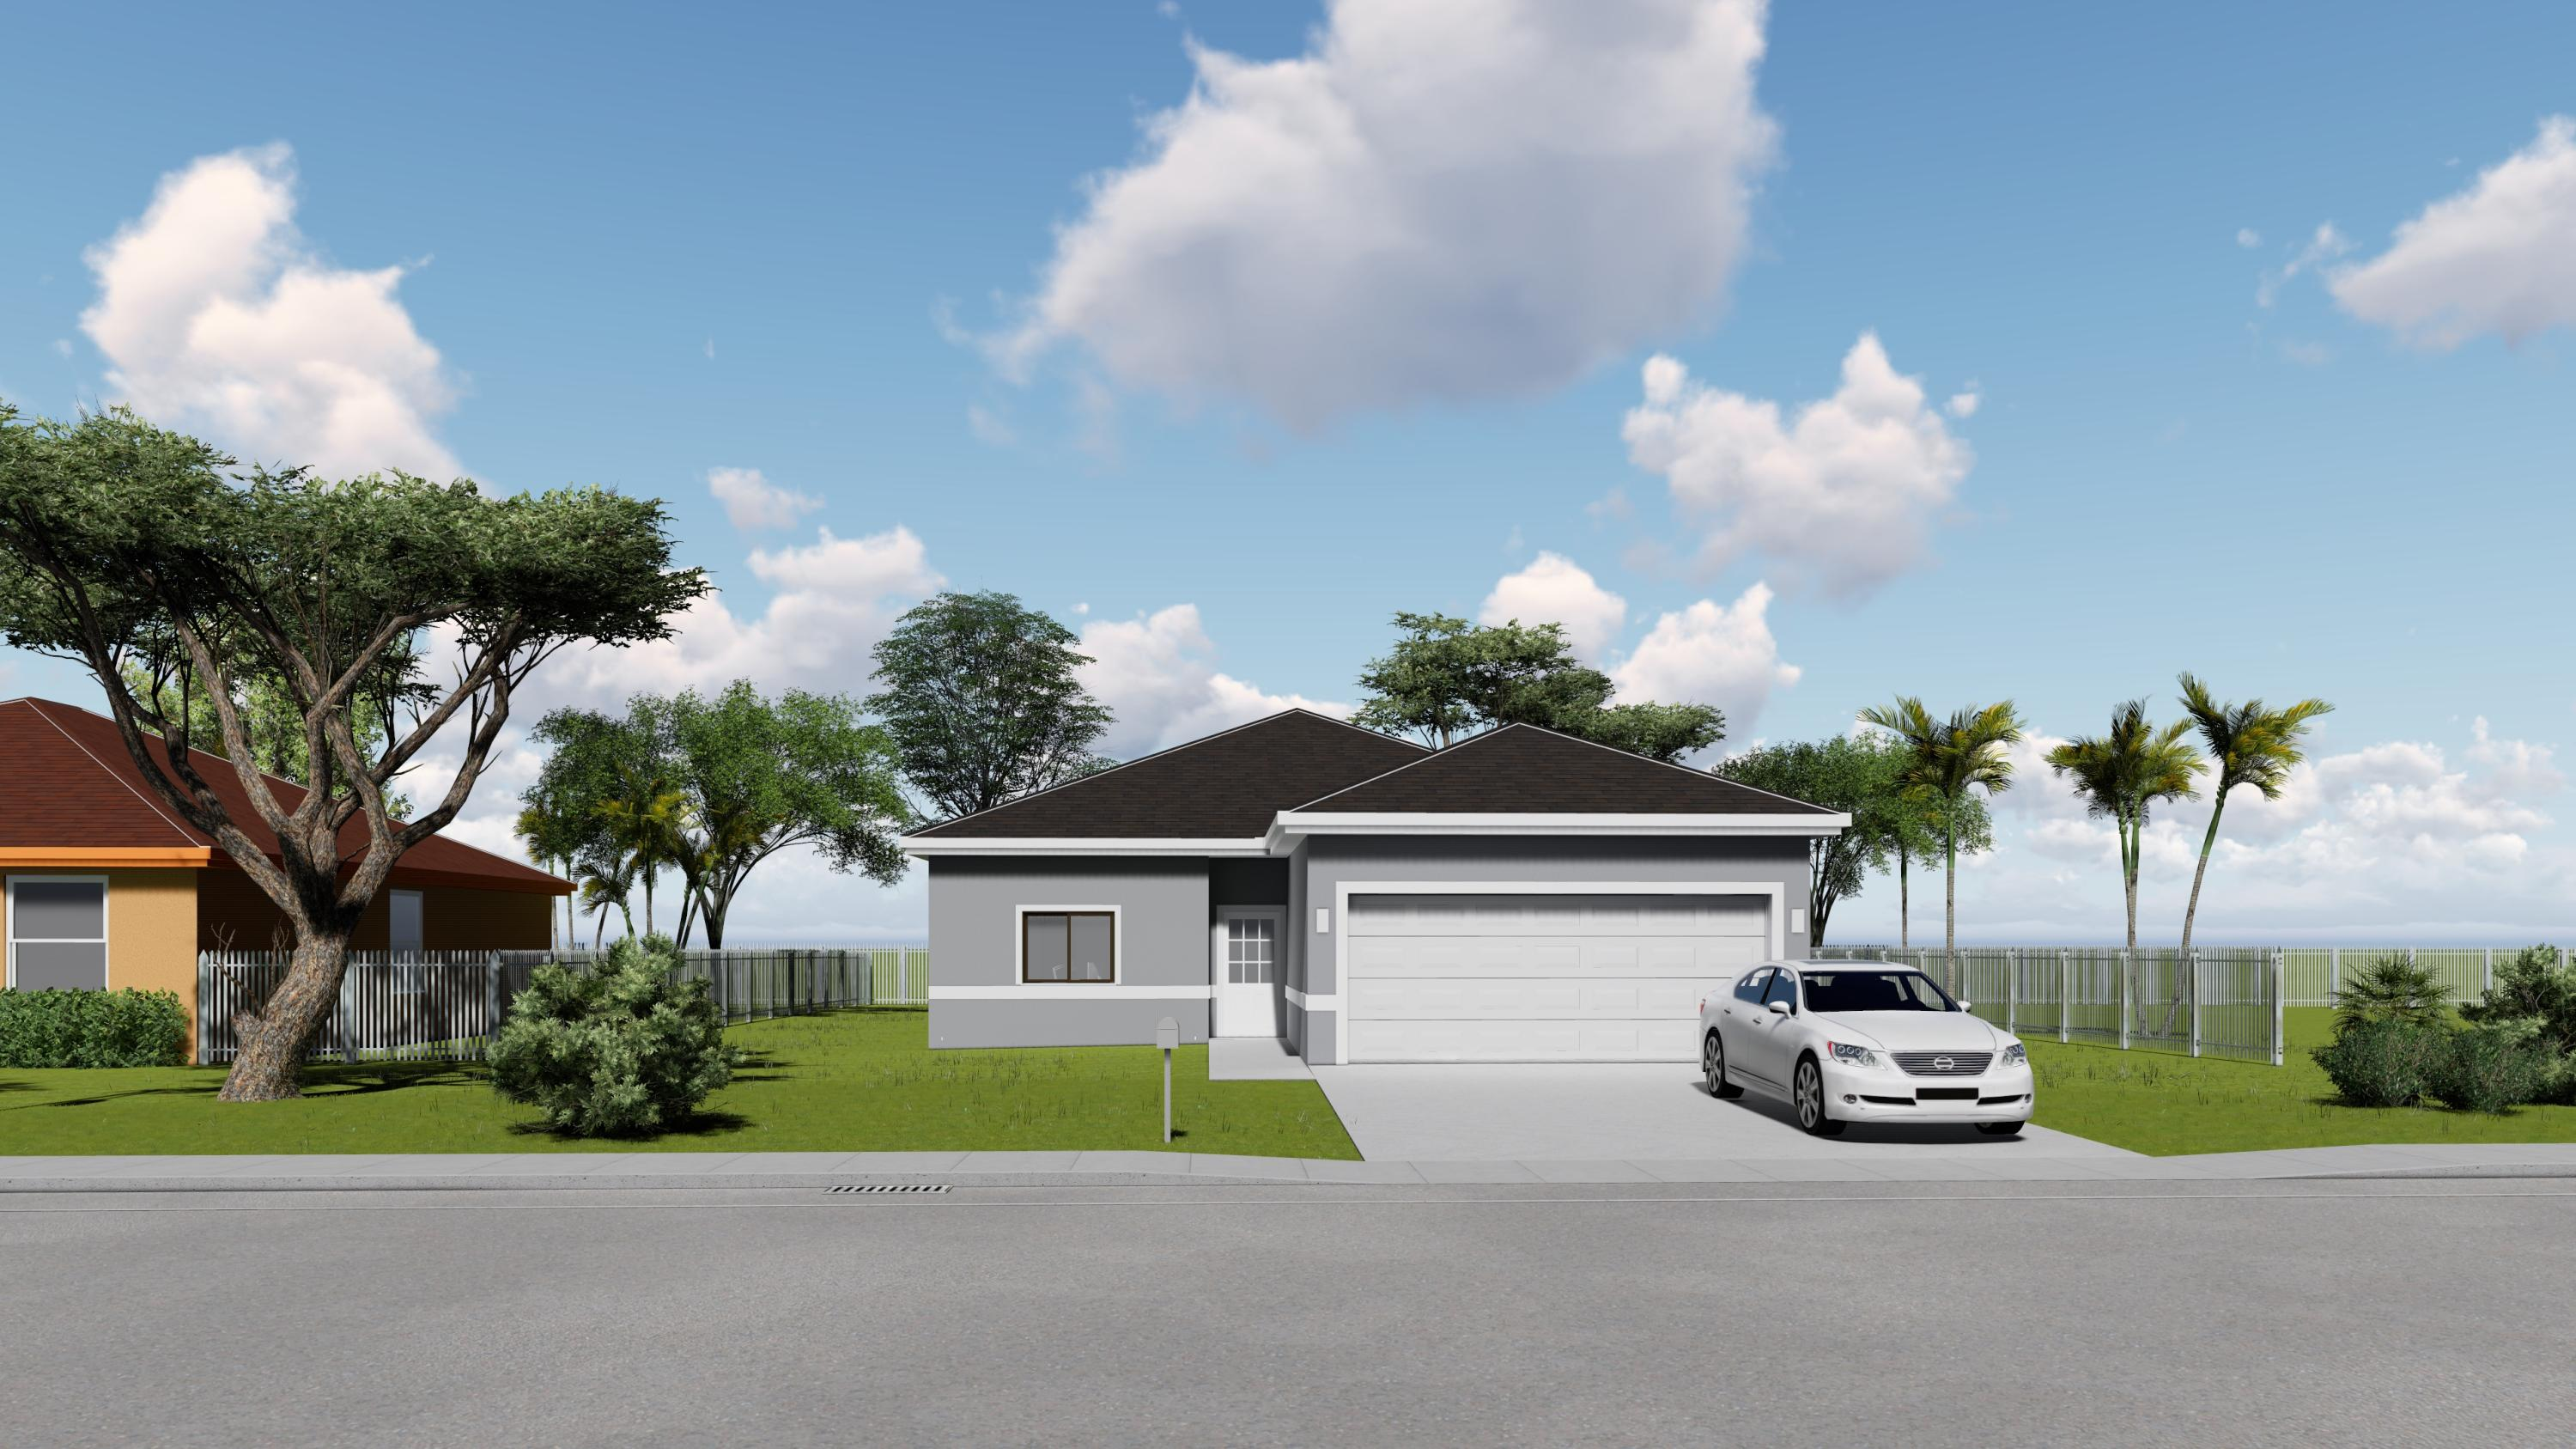 Photo of 2864 NW 9th Street, Fort Lauderdale, FL 33311